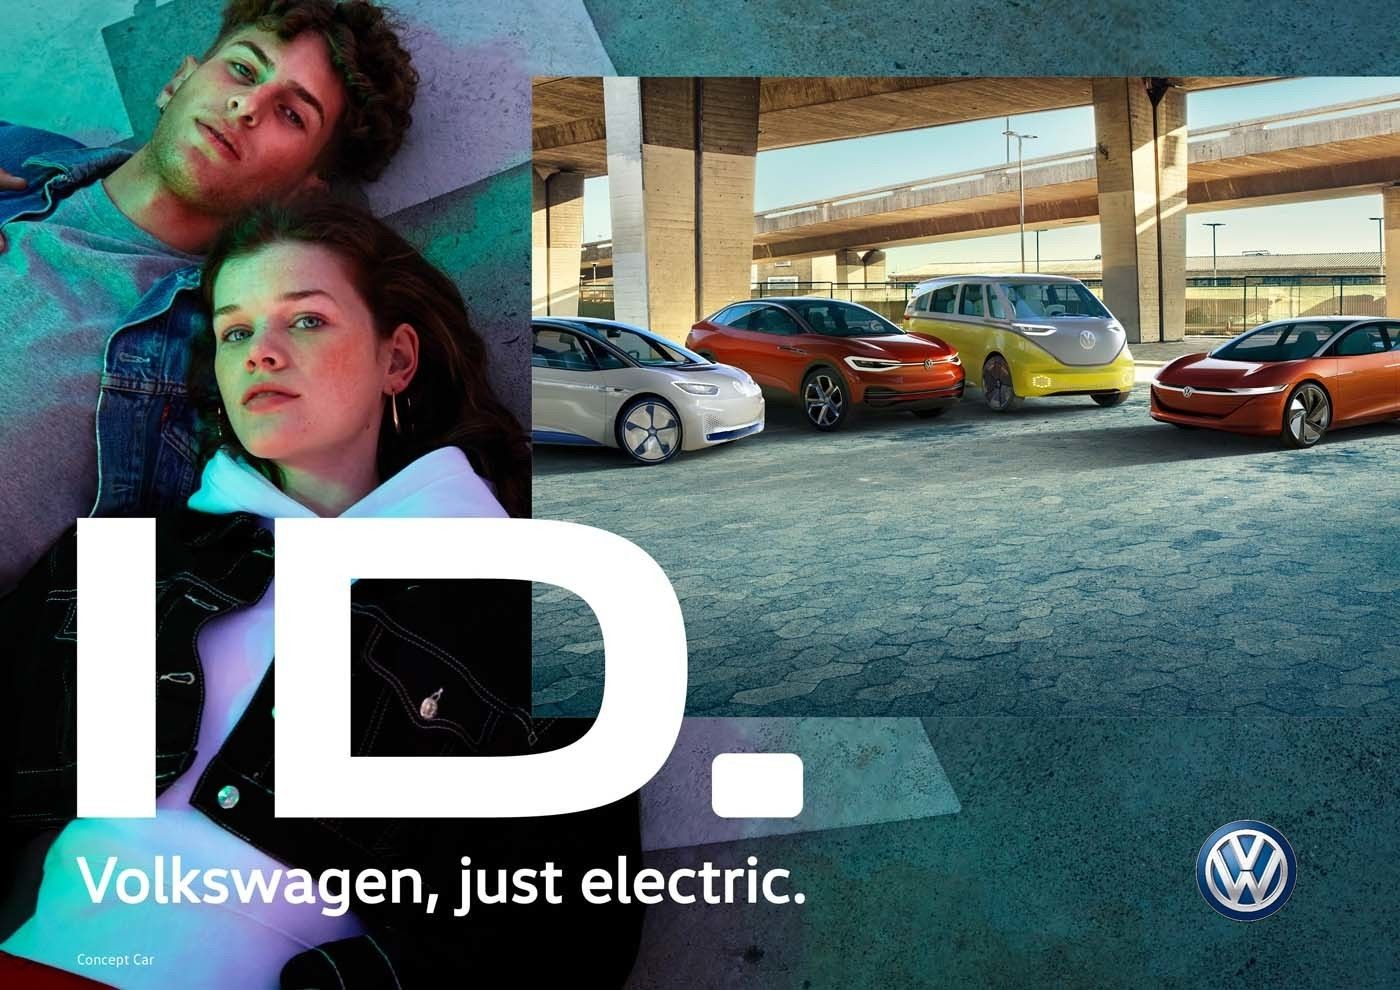 The new ID Volkswagen-Campaign all over Europe in the new Photostyle, realized by UWE DUETTMANN